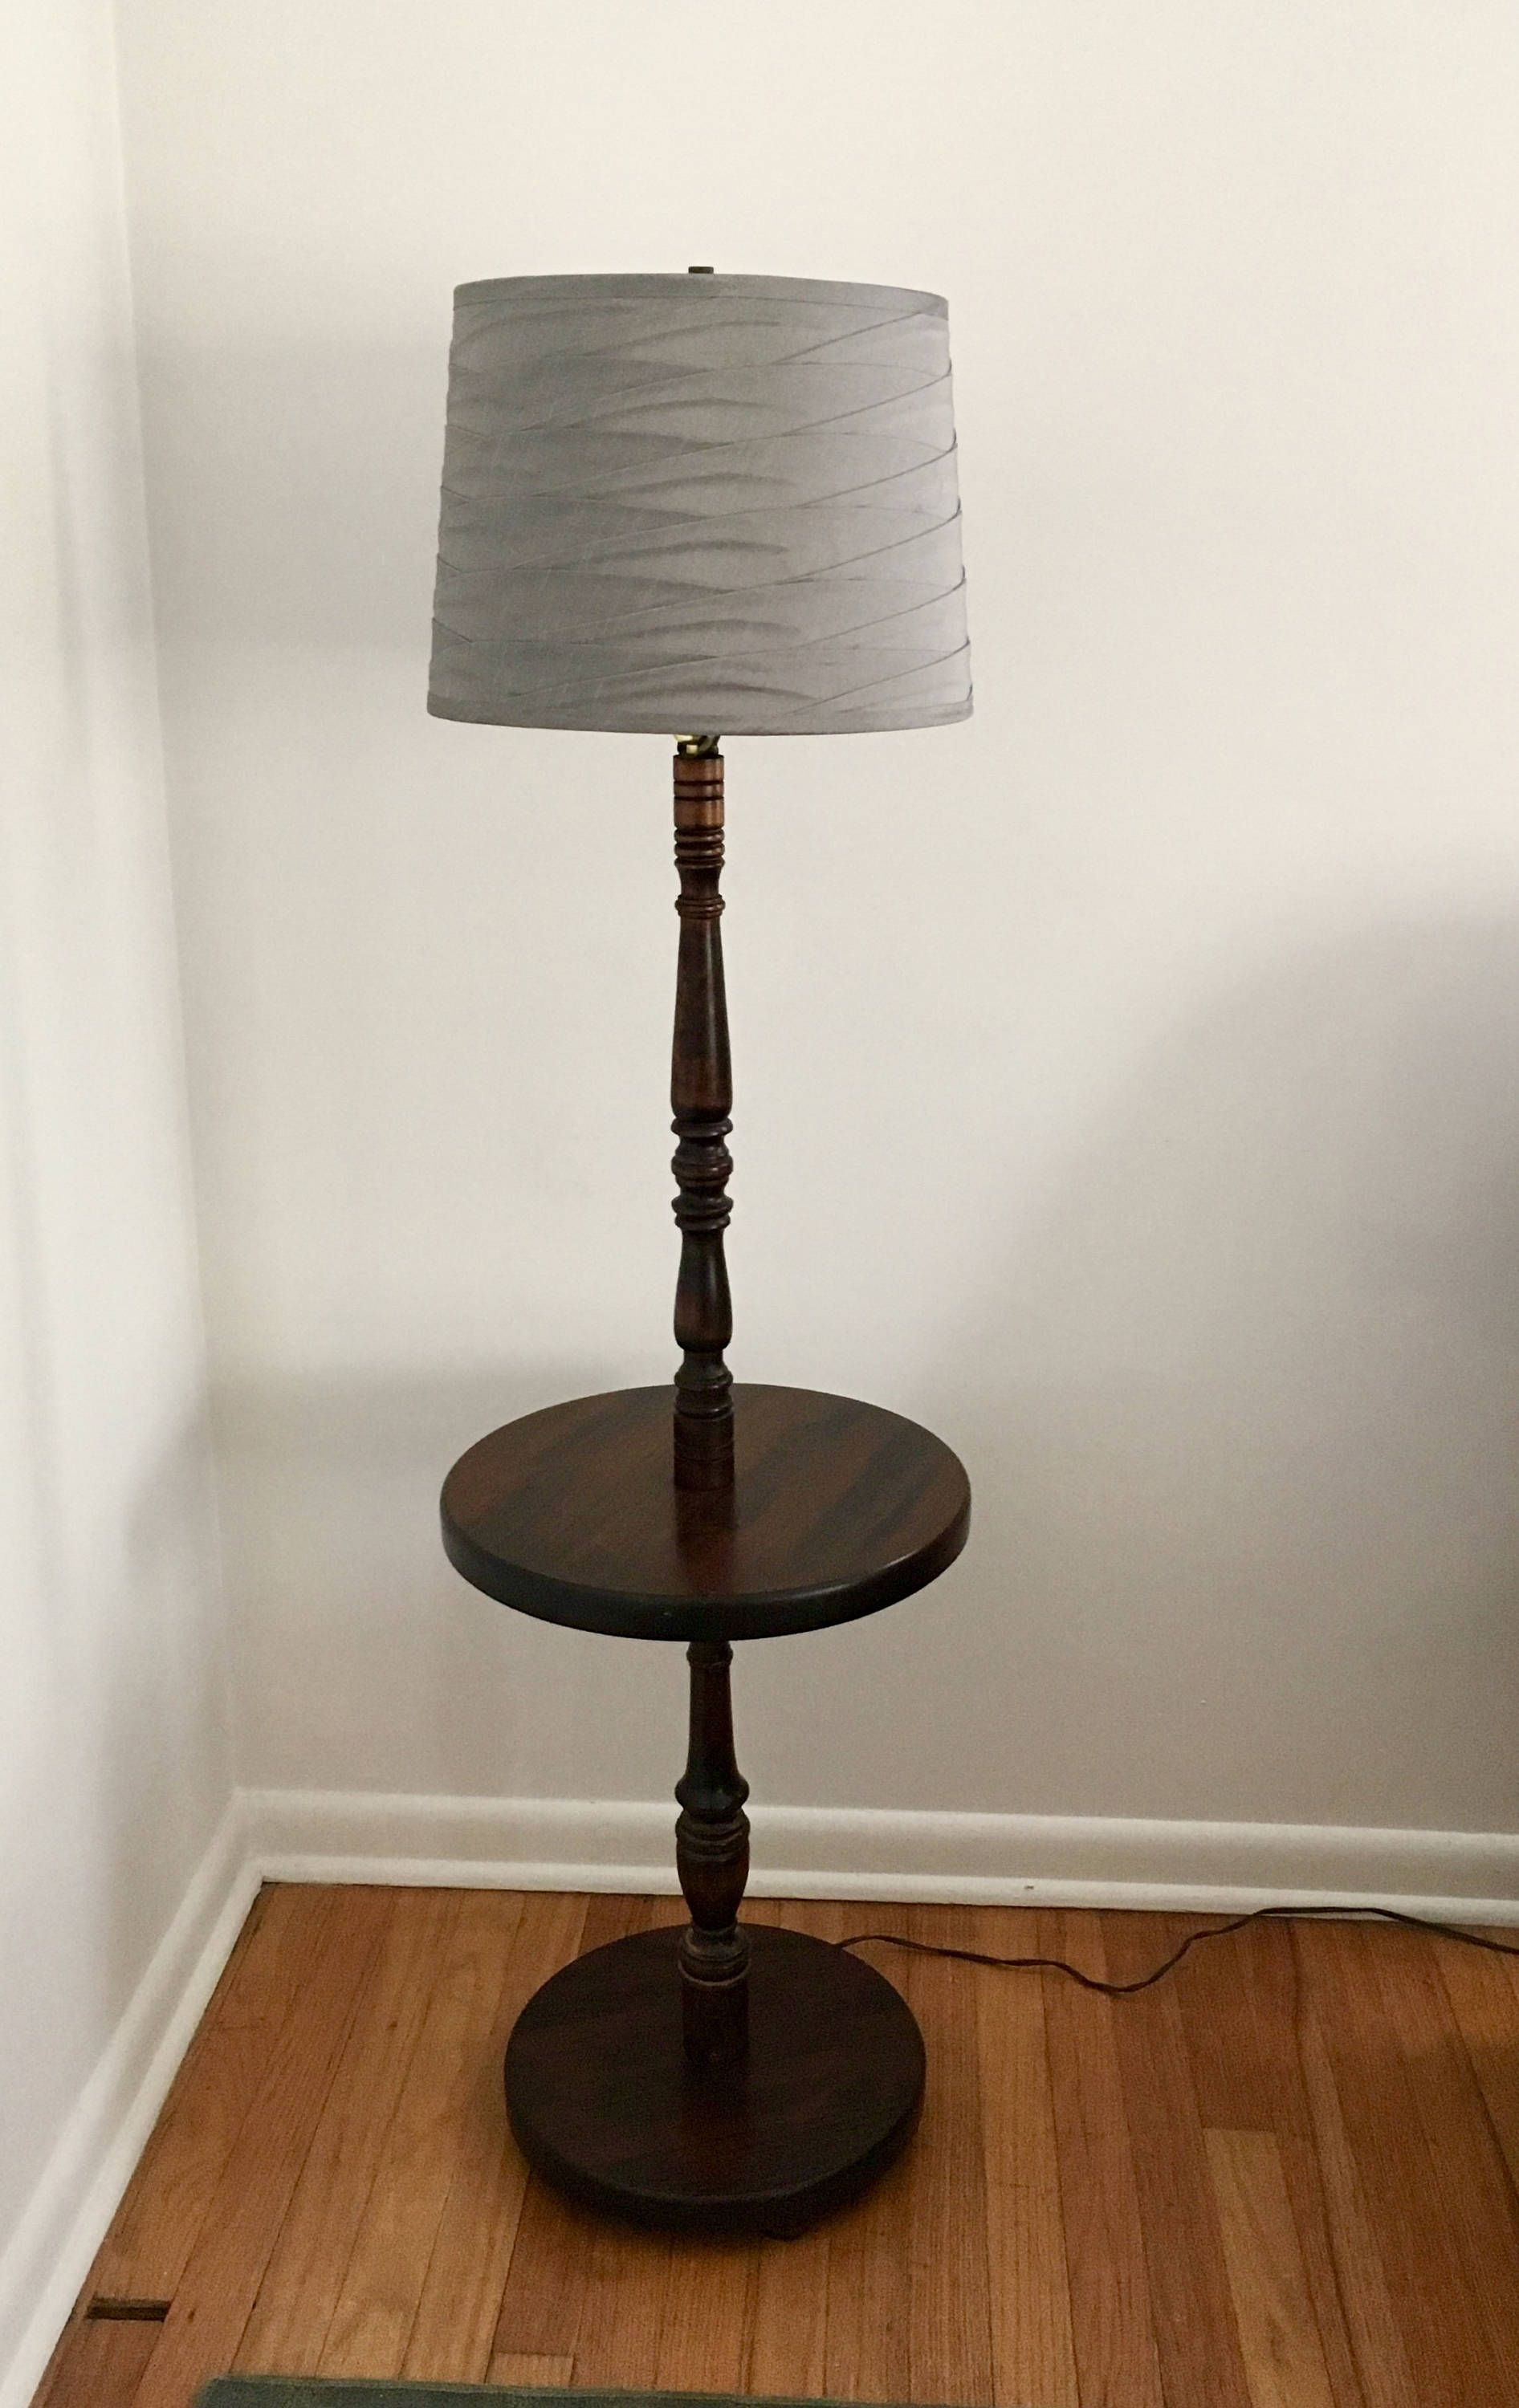 Floor lamp tables - Vintage Solid Mahogany Wood Floor Lamp With Table Farmhouse Shabby French Country Cottage Rustic Nursery Bedroom Living Room